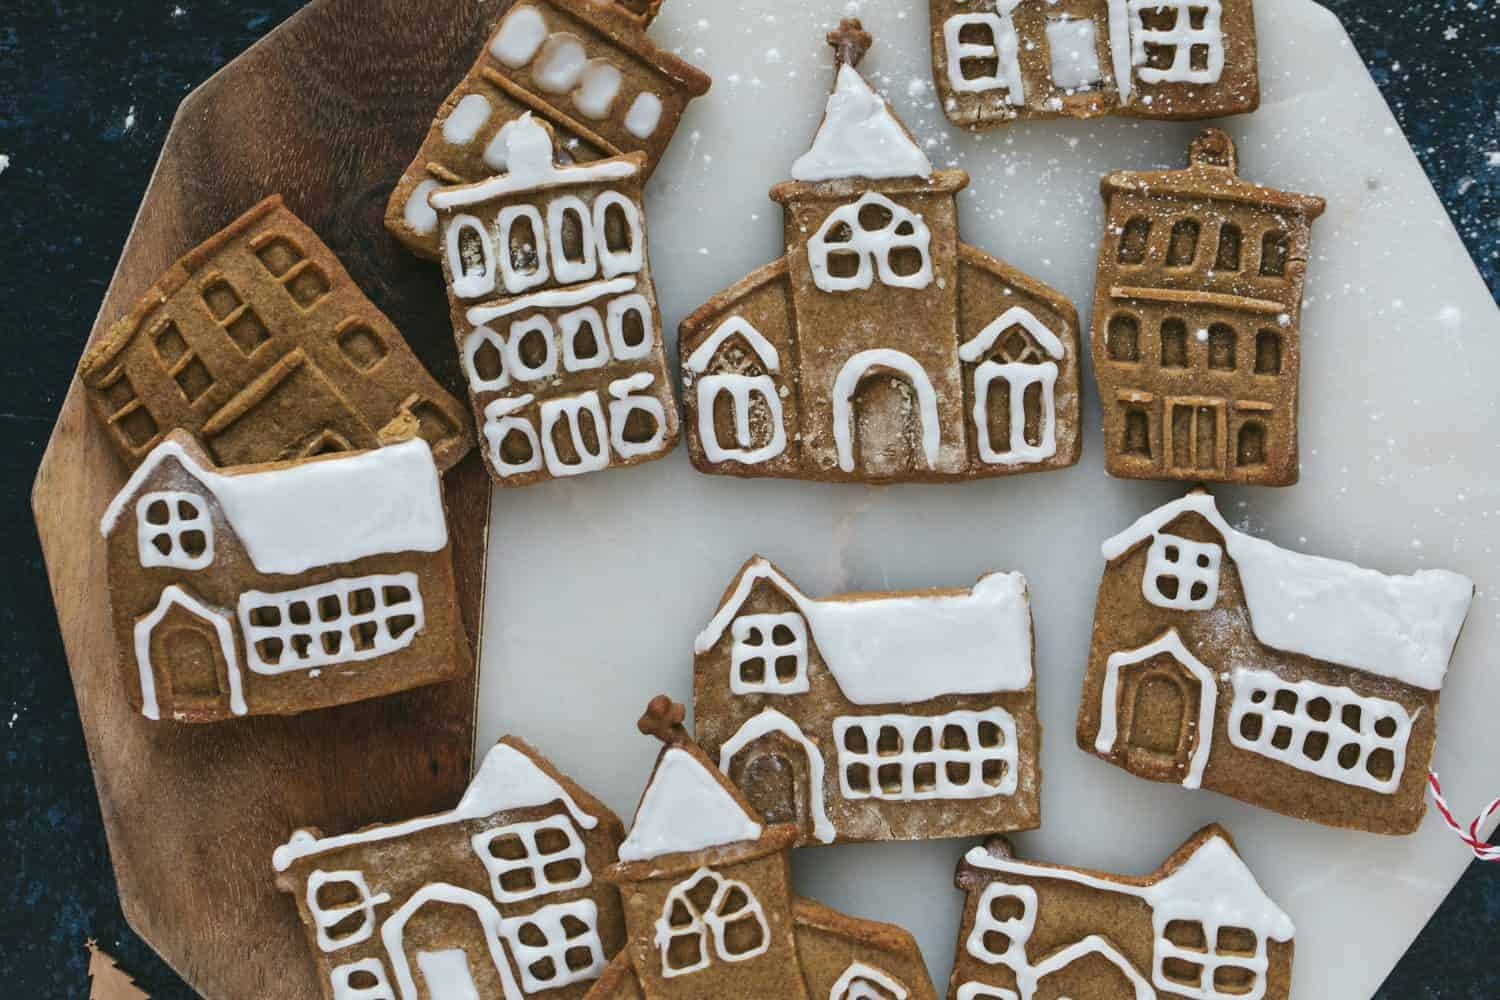 Houses and churches made from gingerbread biscuit dough.